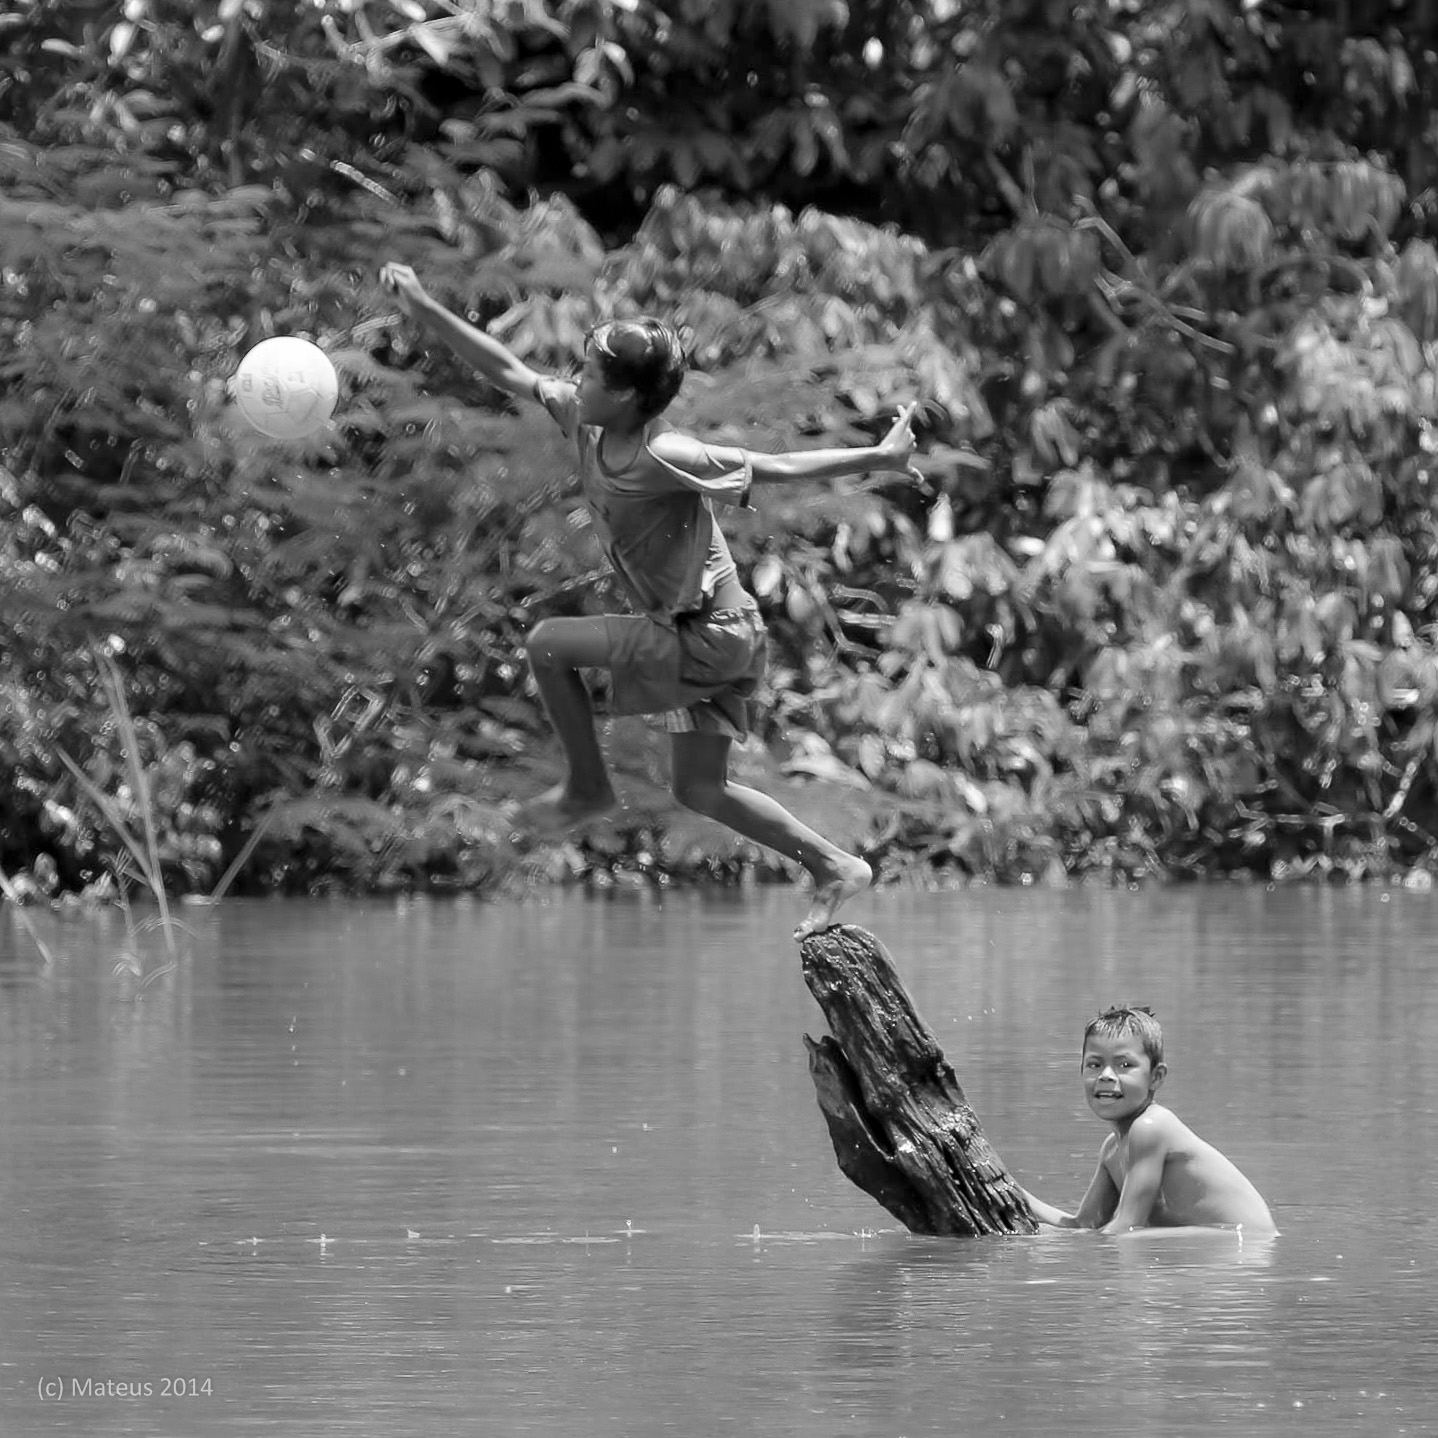 Children playing in San Martin de Amacayuca, Amazonas, Colombia. Minor edits made to the image. By Carlos Eduardo Mateus. Available  here .